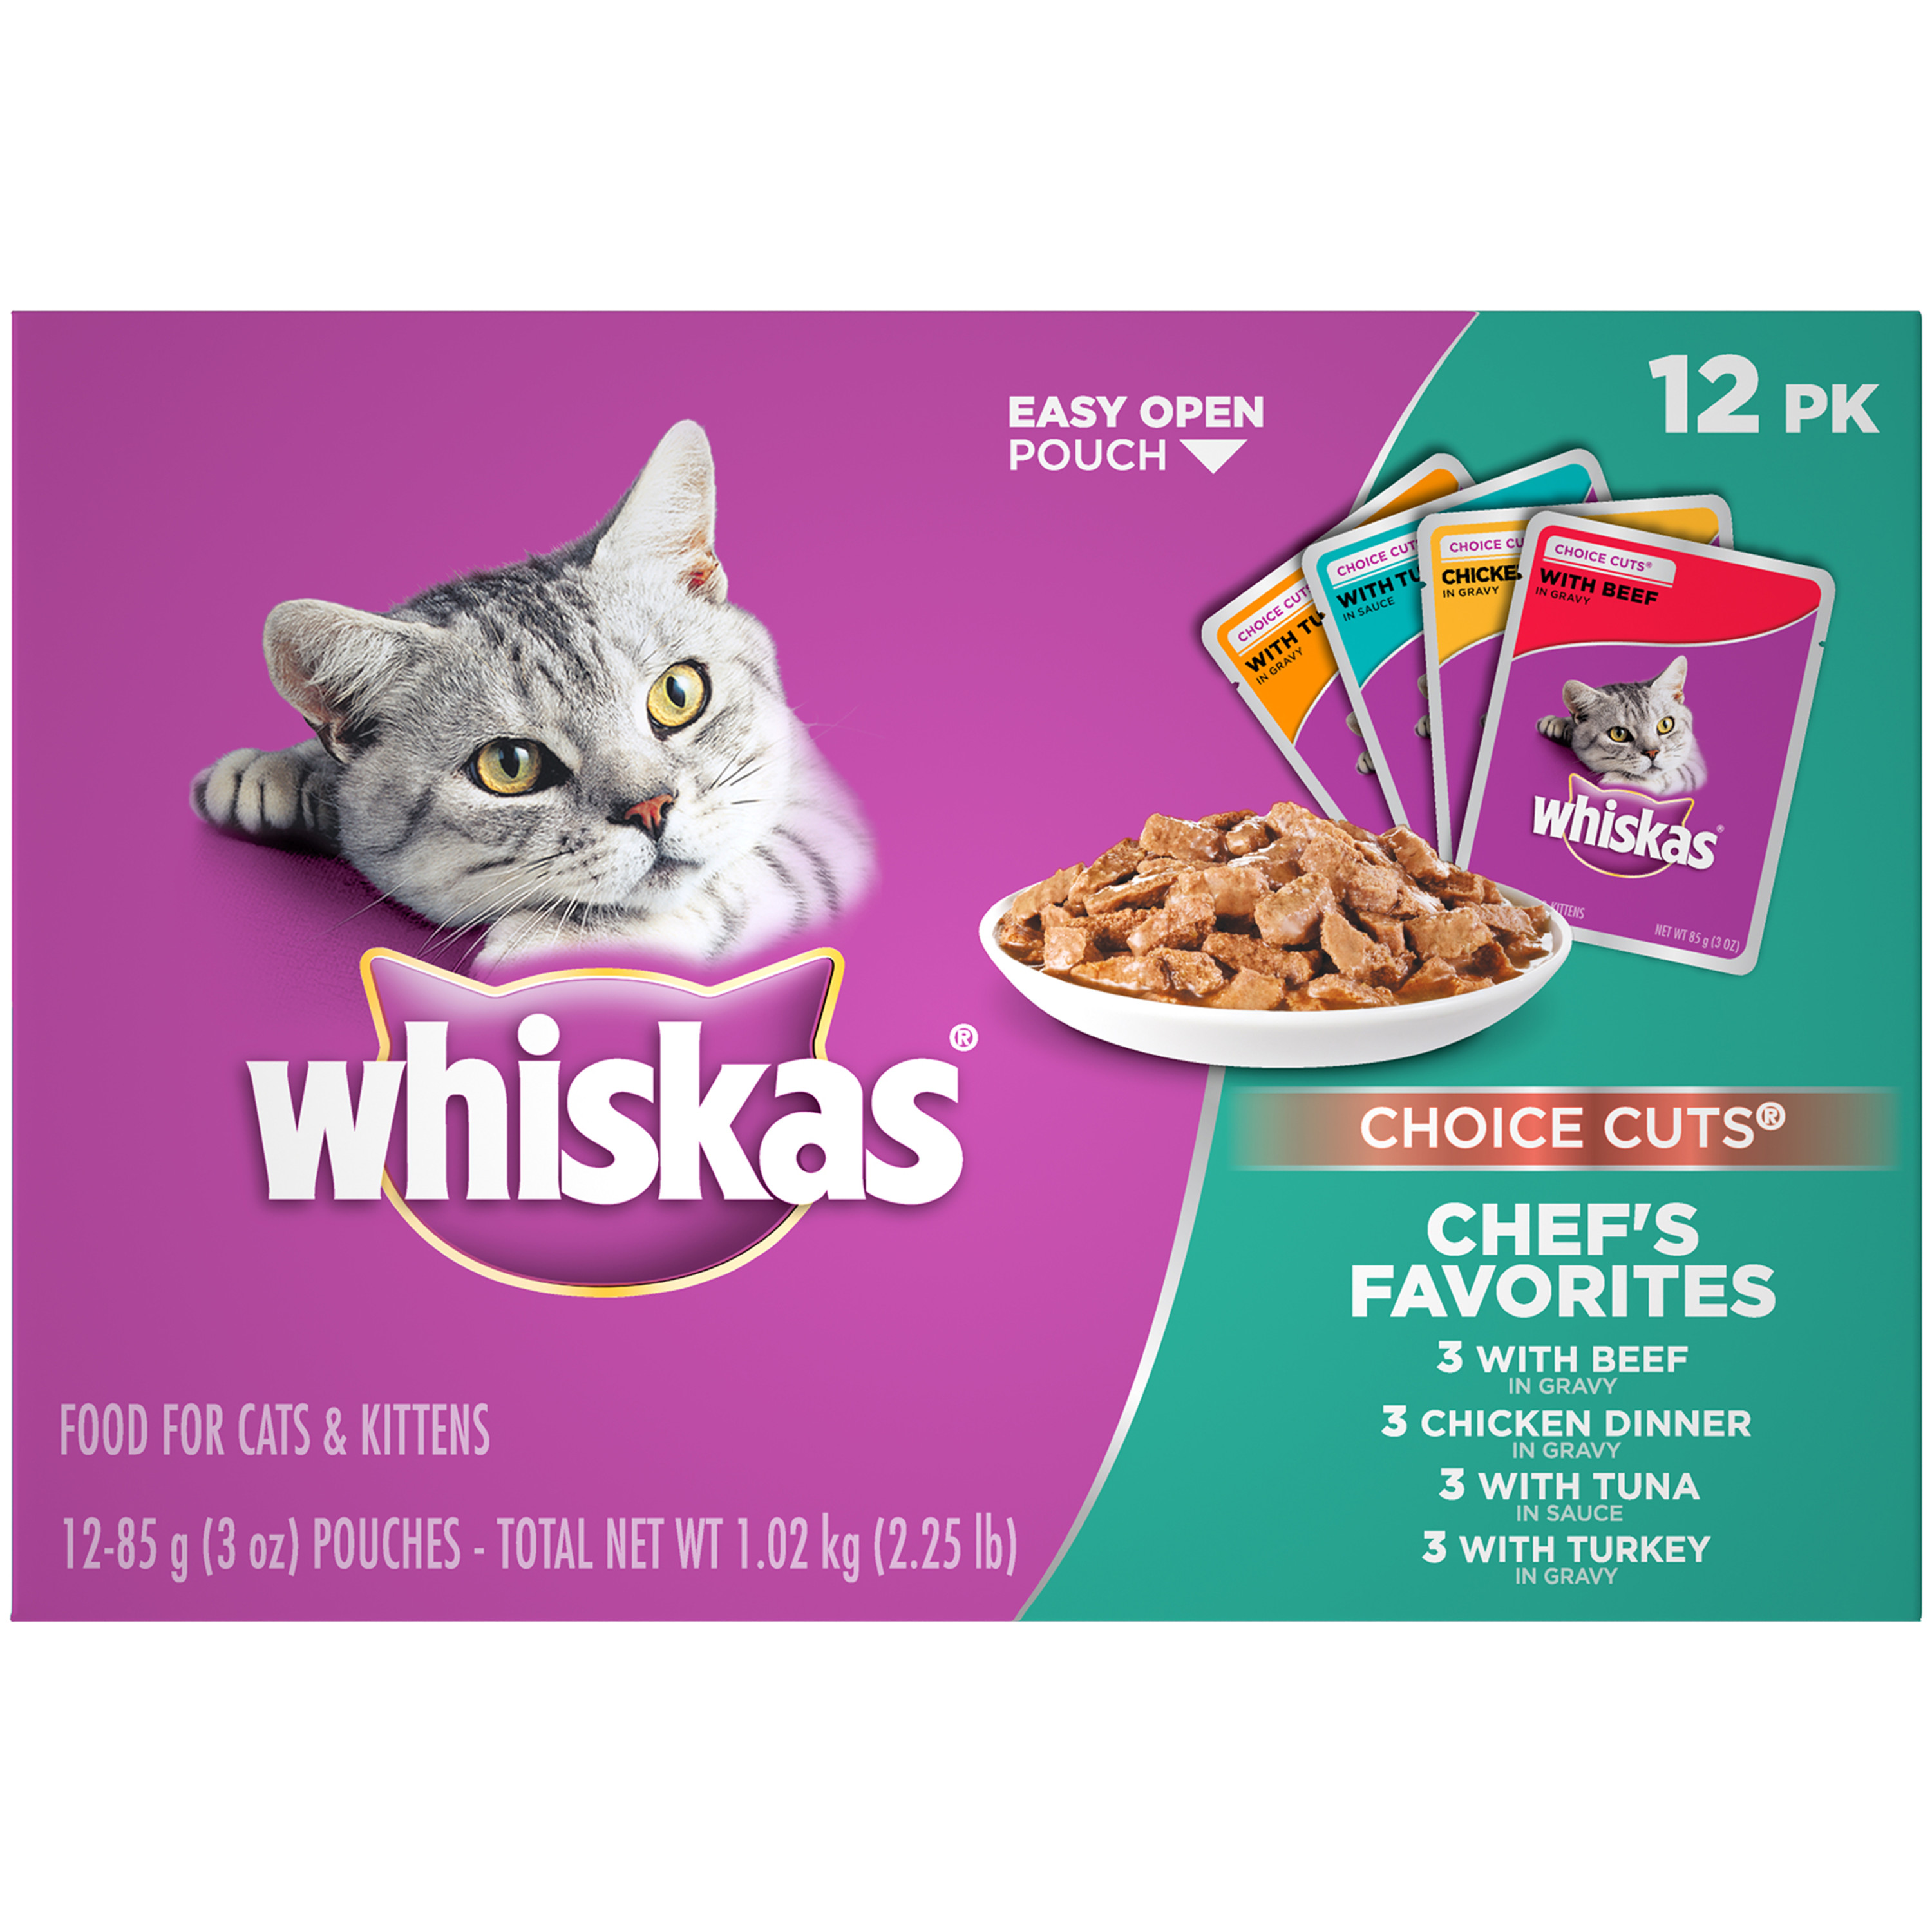 WHISKAS CHOICE CUTS Chef's Favorites Variety Pack Wet Cat Food Pouches, (12) 3 oz. Pouches